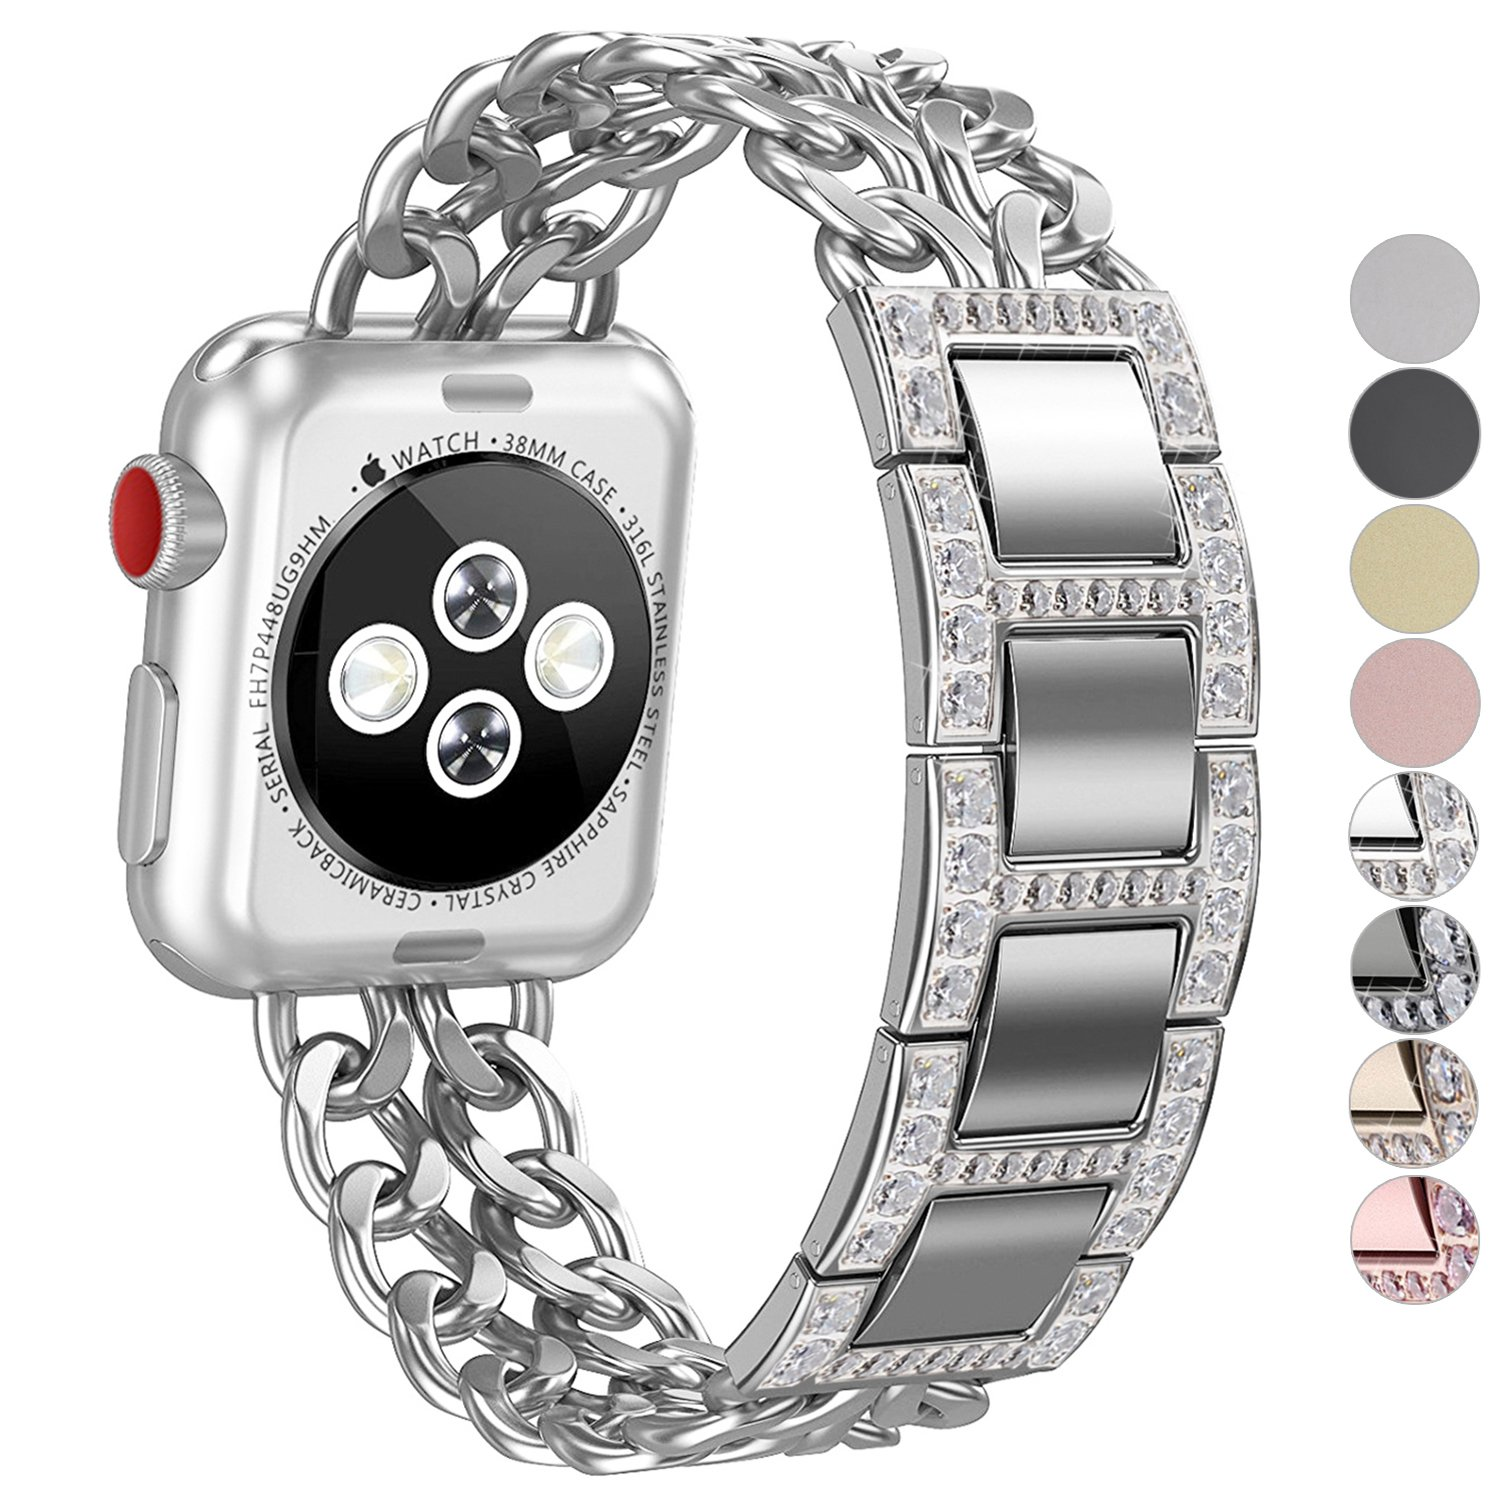 Apple Watch Band, No1seller Premium Stainless Steel Cowboy Style Bracelet Watch Band Strap for Apple Watch Series 3, Series 2, Series 1